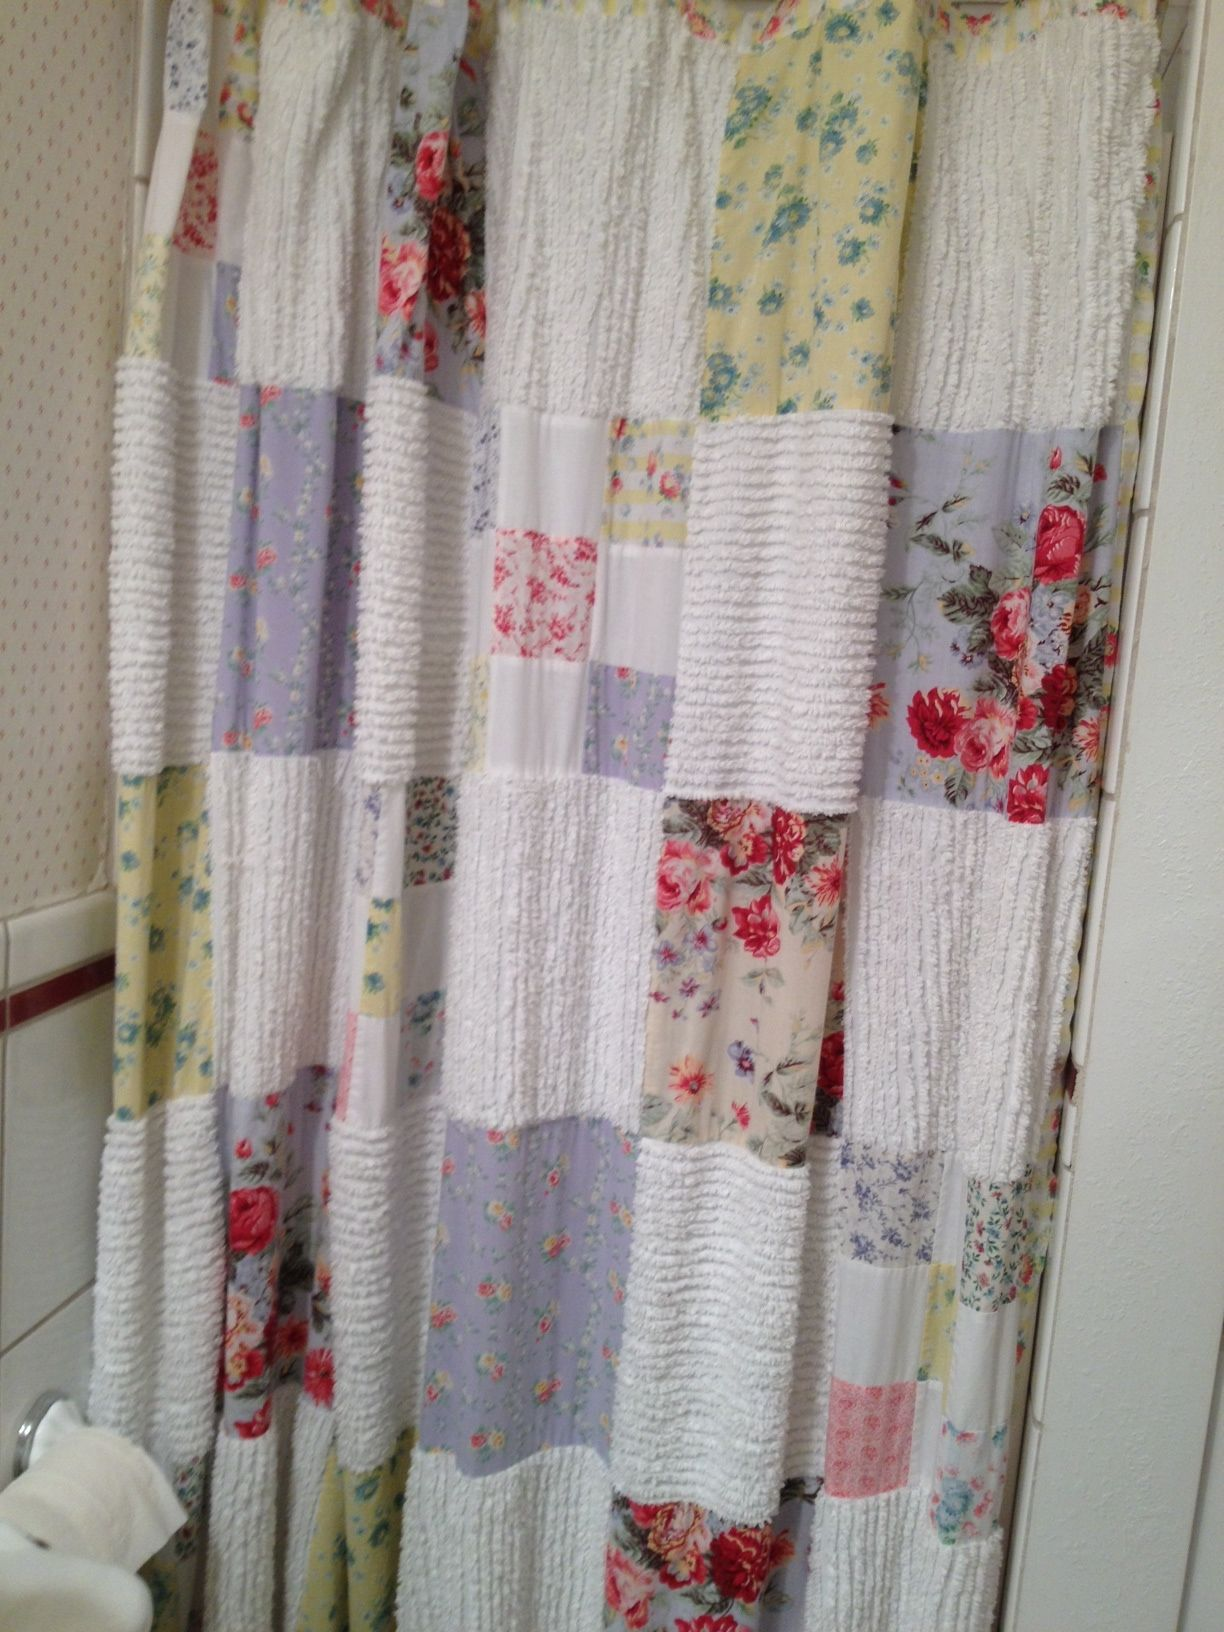 Patchwork shower curtain Do in cotton from sheets and